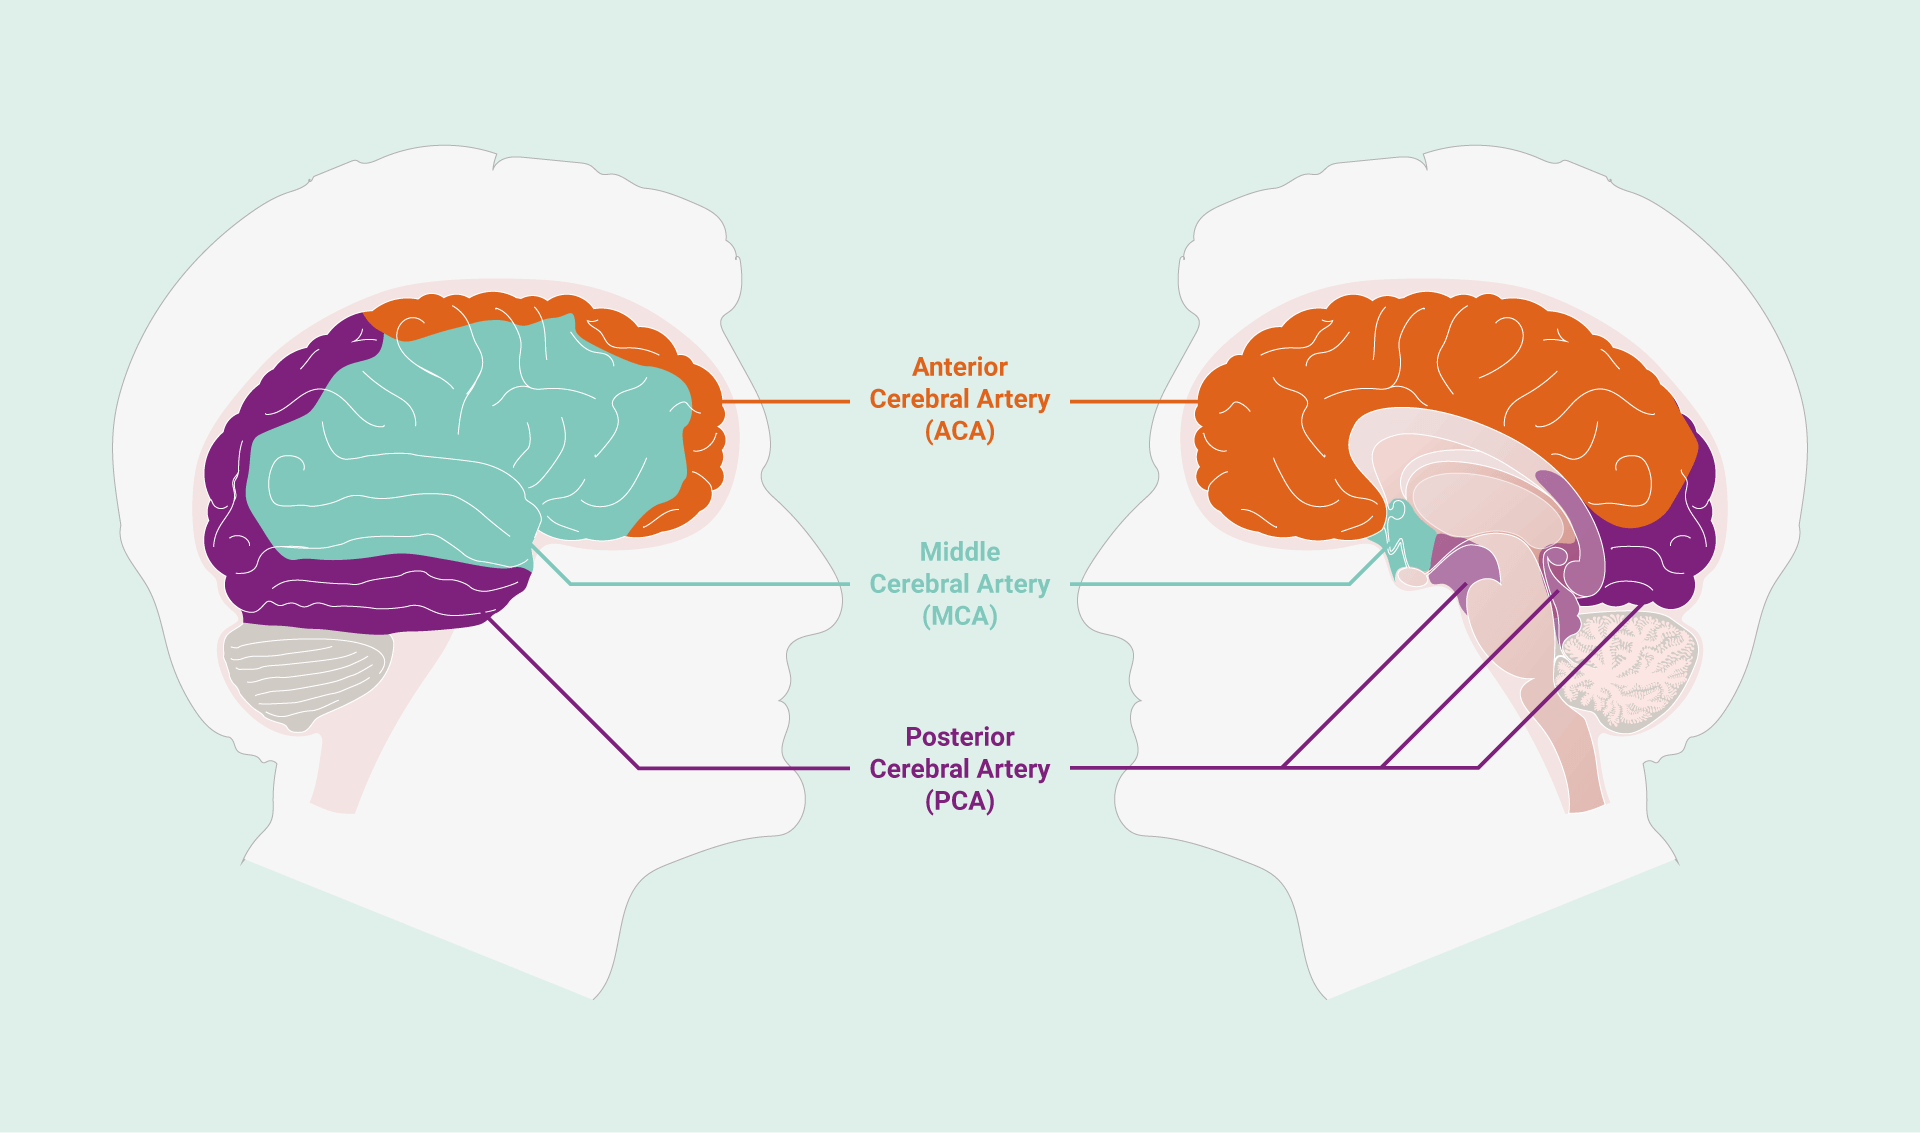 Areas of the brain supplied by the three paired cerebral arteries